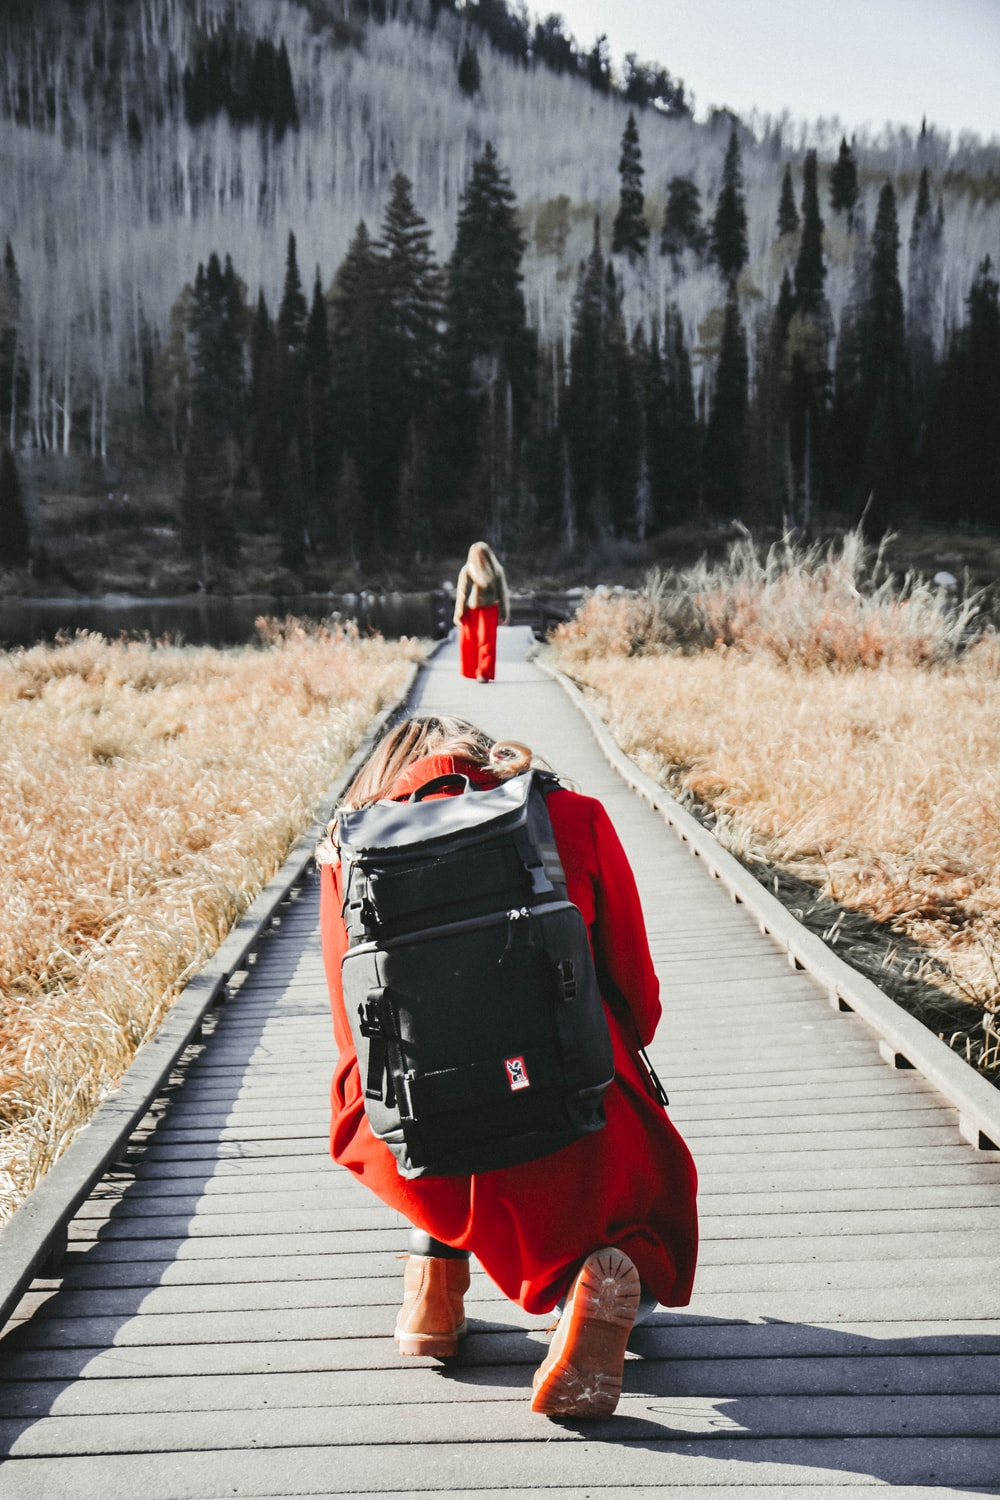 person wearing red cloth and black bag sitting on bridge in front of forest